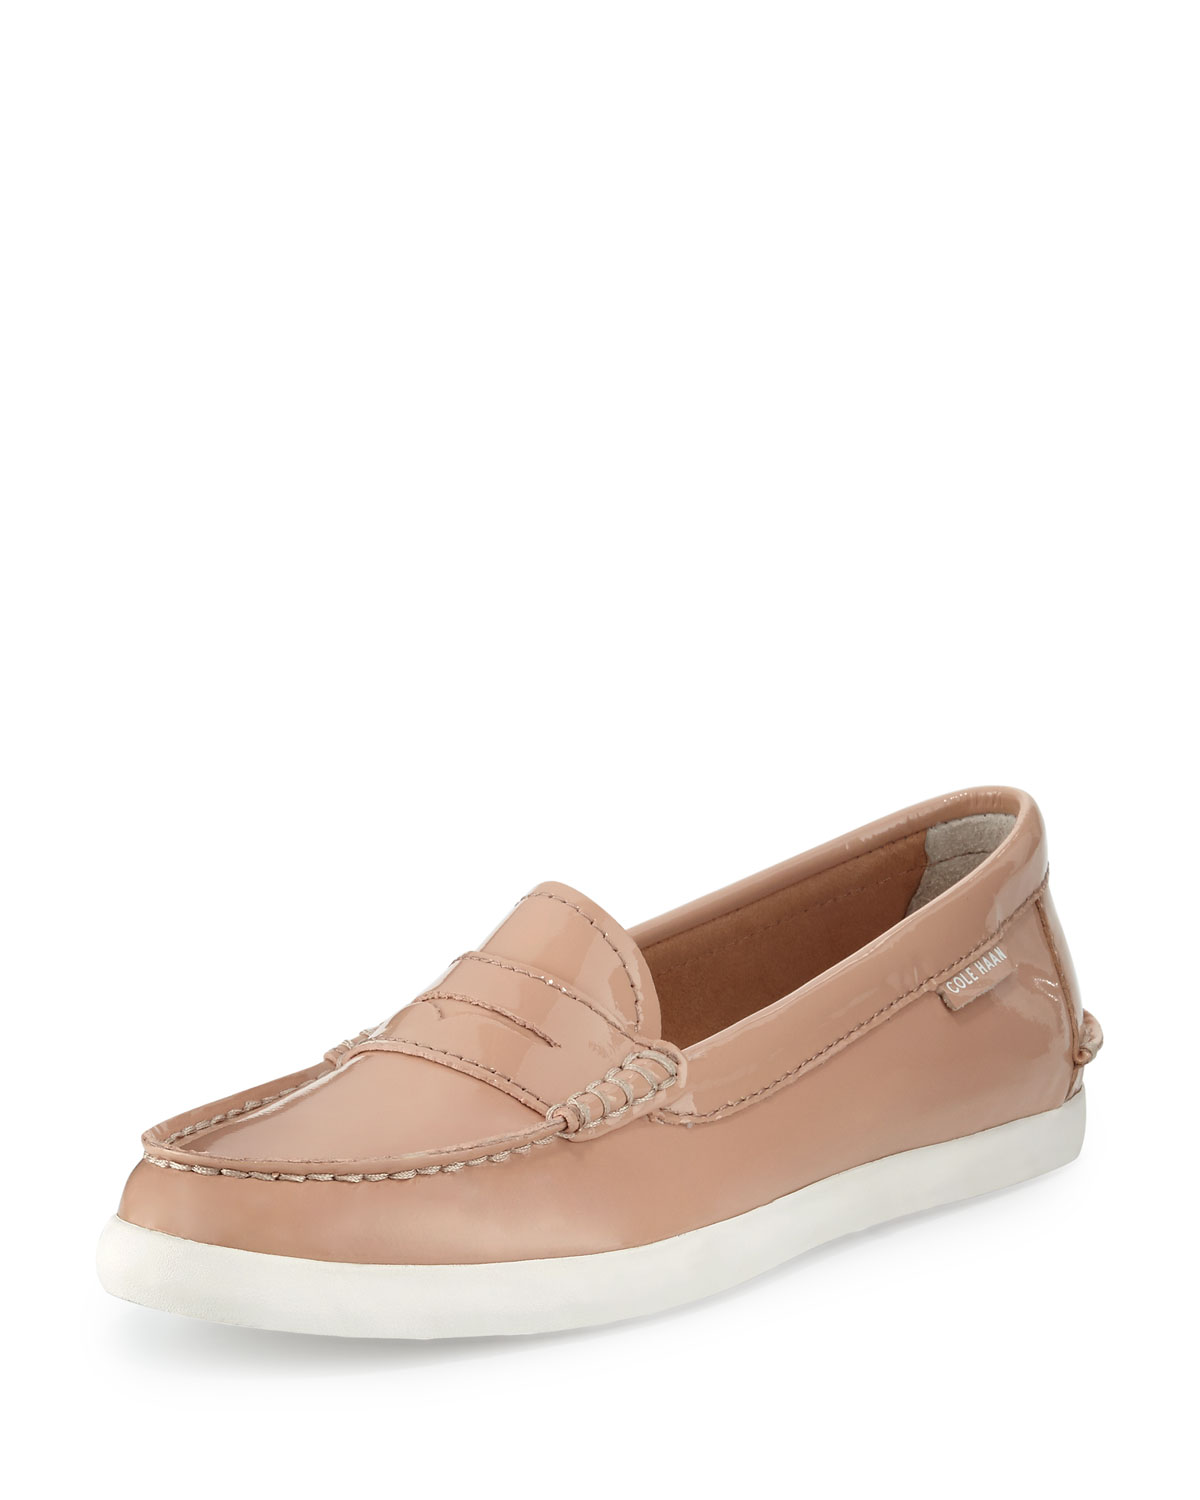 88044462e54 Cole Haan Pinch Weekender Patent Loafer